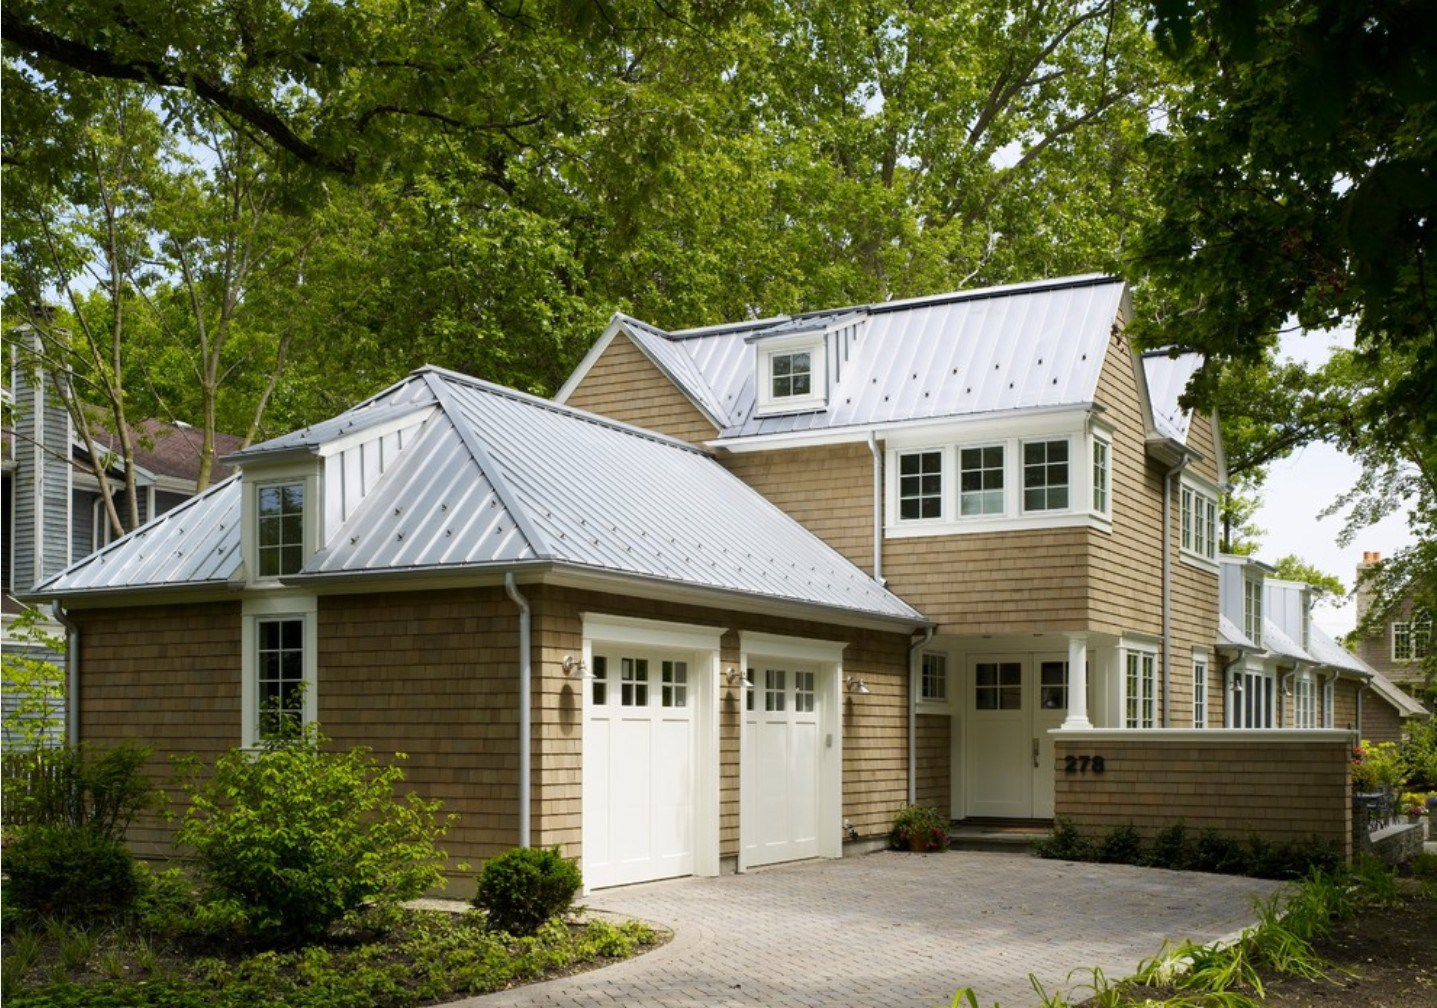 Does Metal Roofing Cost More Then Asphalt Shingles